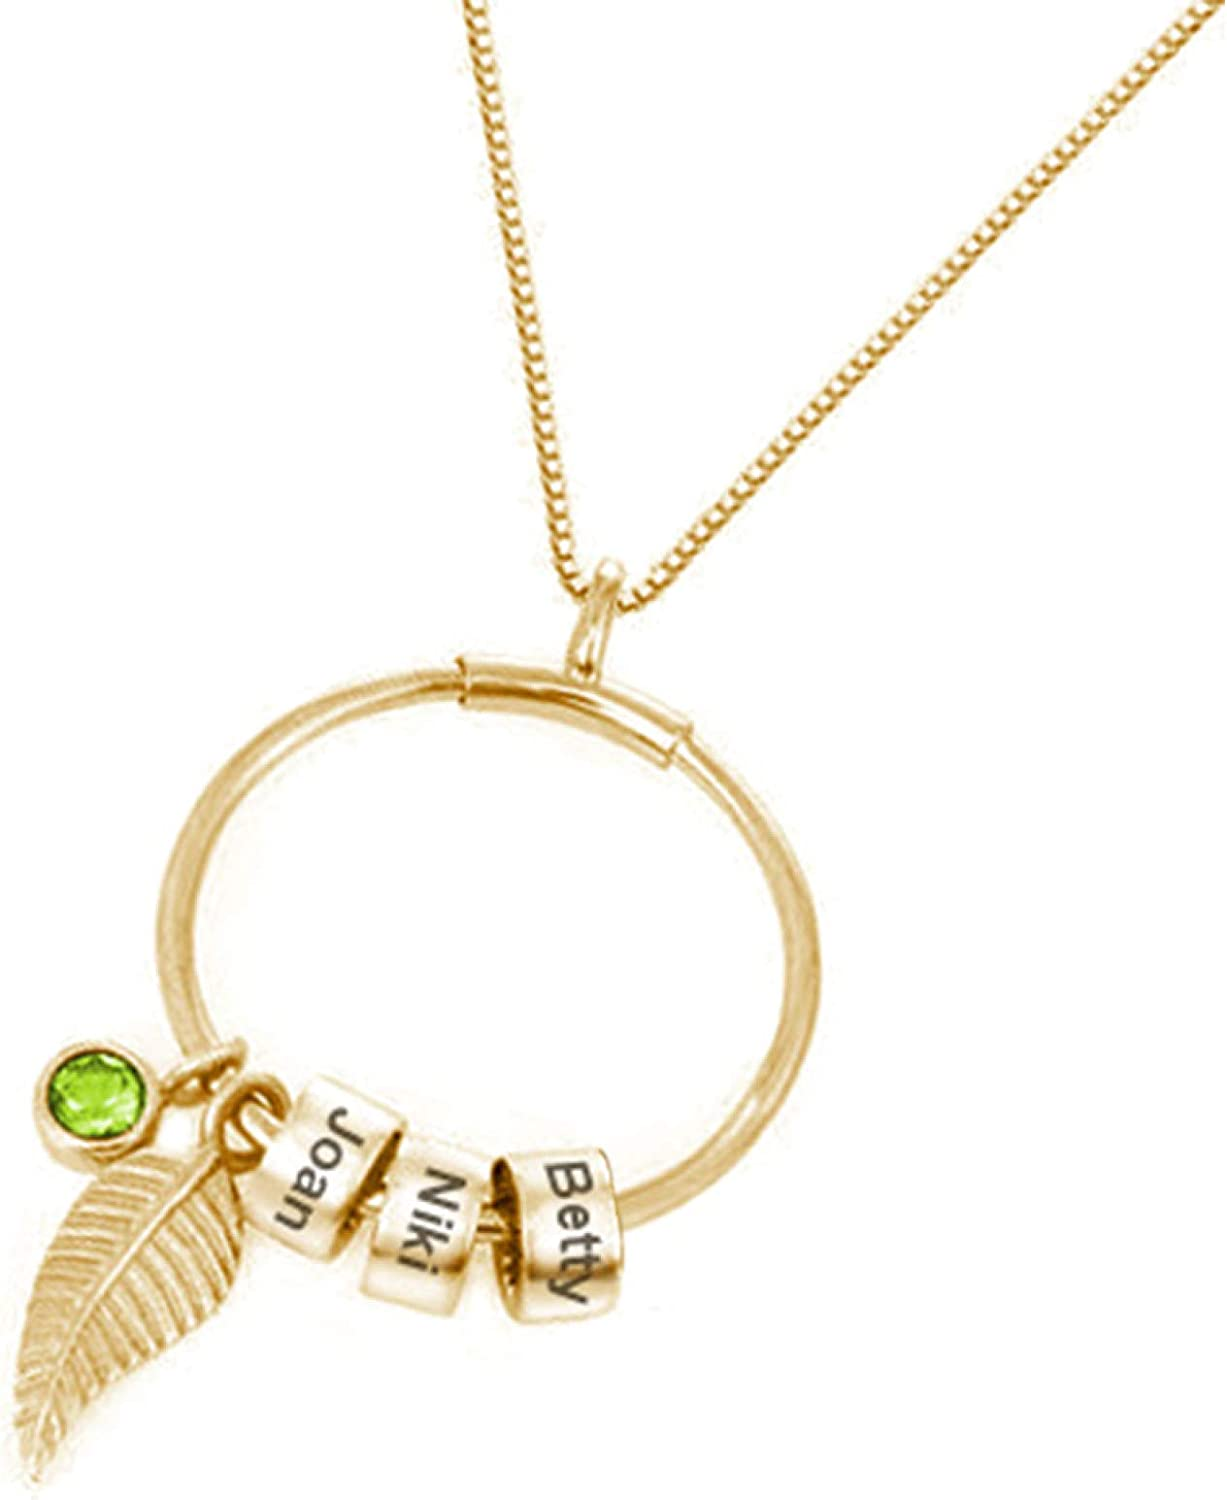 Gsdviyh36 Seasons Women Necklace Women Name Engraved Rhinestone Beads Leaf Pendant Chain Necklace Jewelry Gift for Party Jewelry